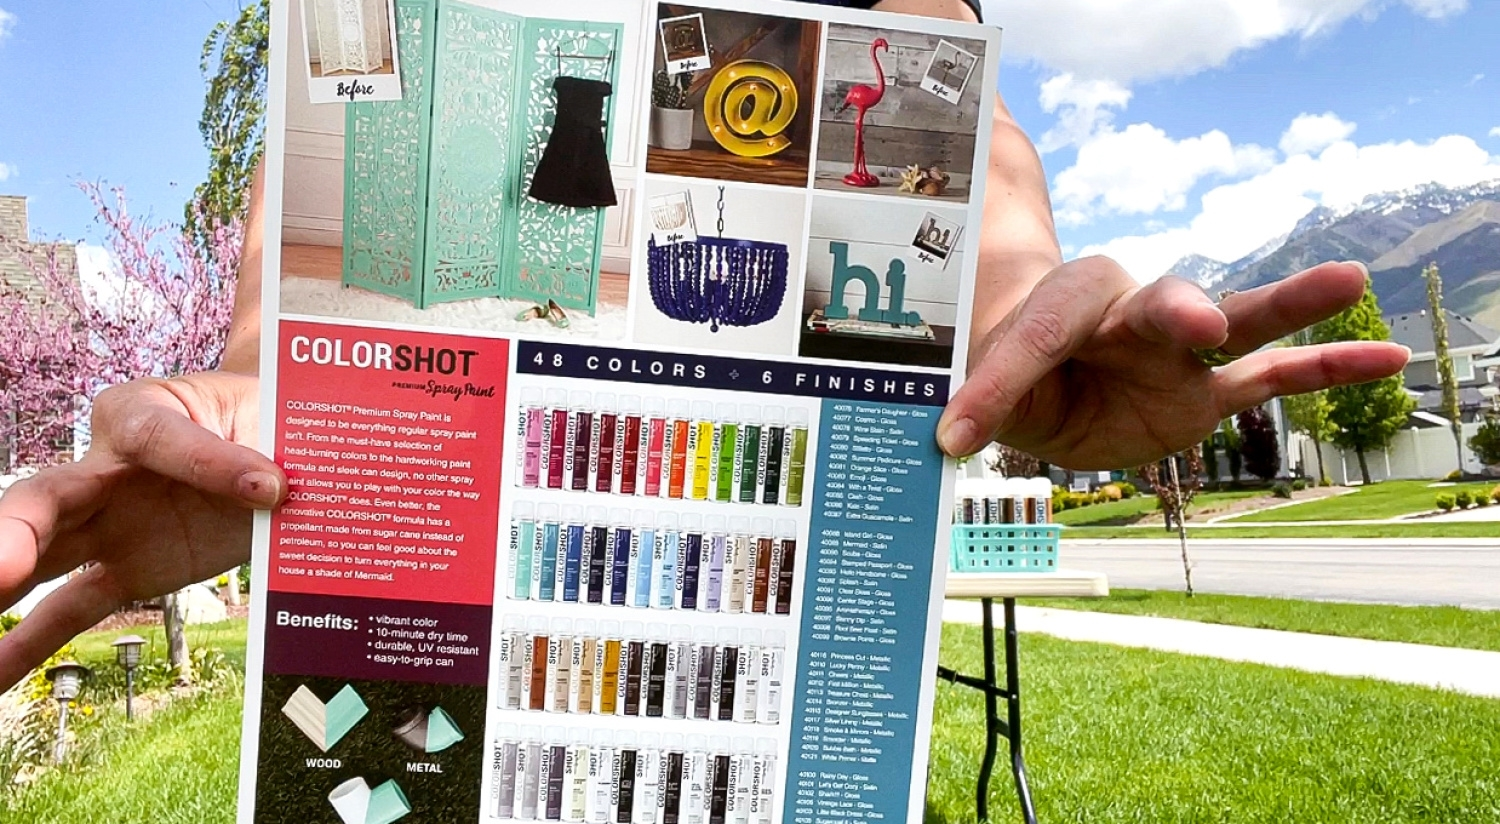 Tip 5: Know your spray paint